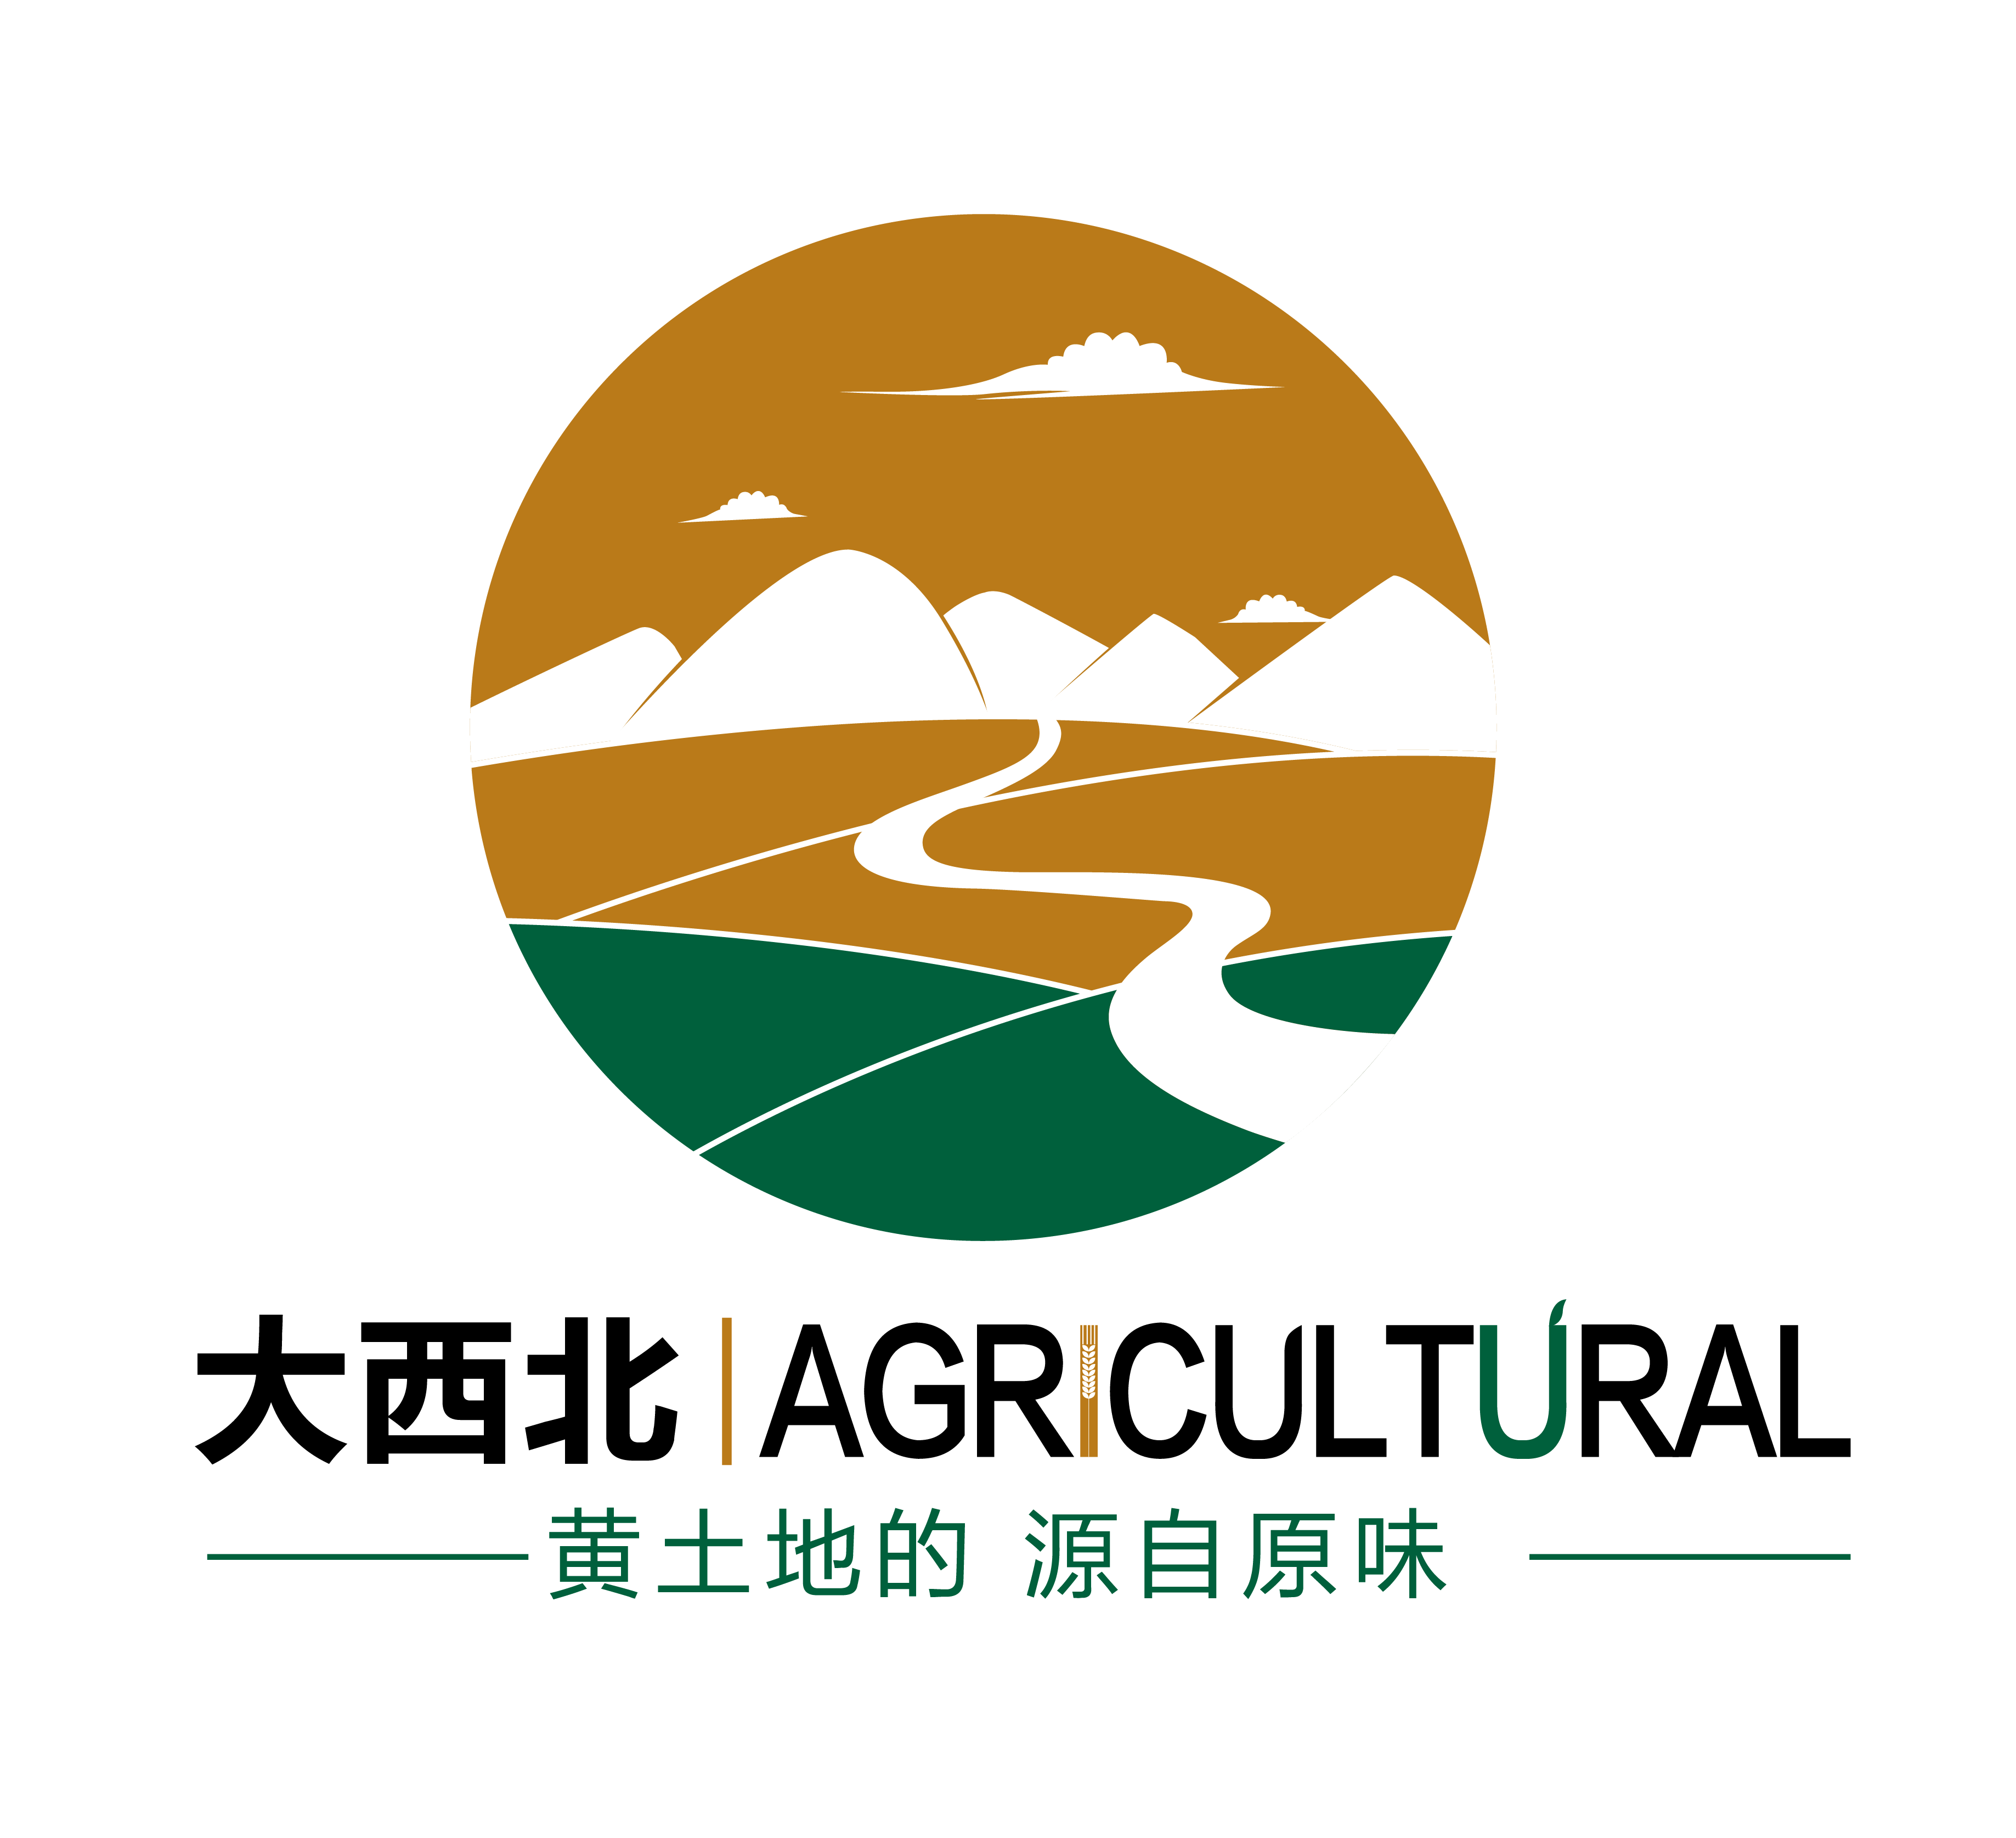 Big Northwest Agricultural Science and Technology Gansu Provice Co.,Ltd